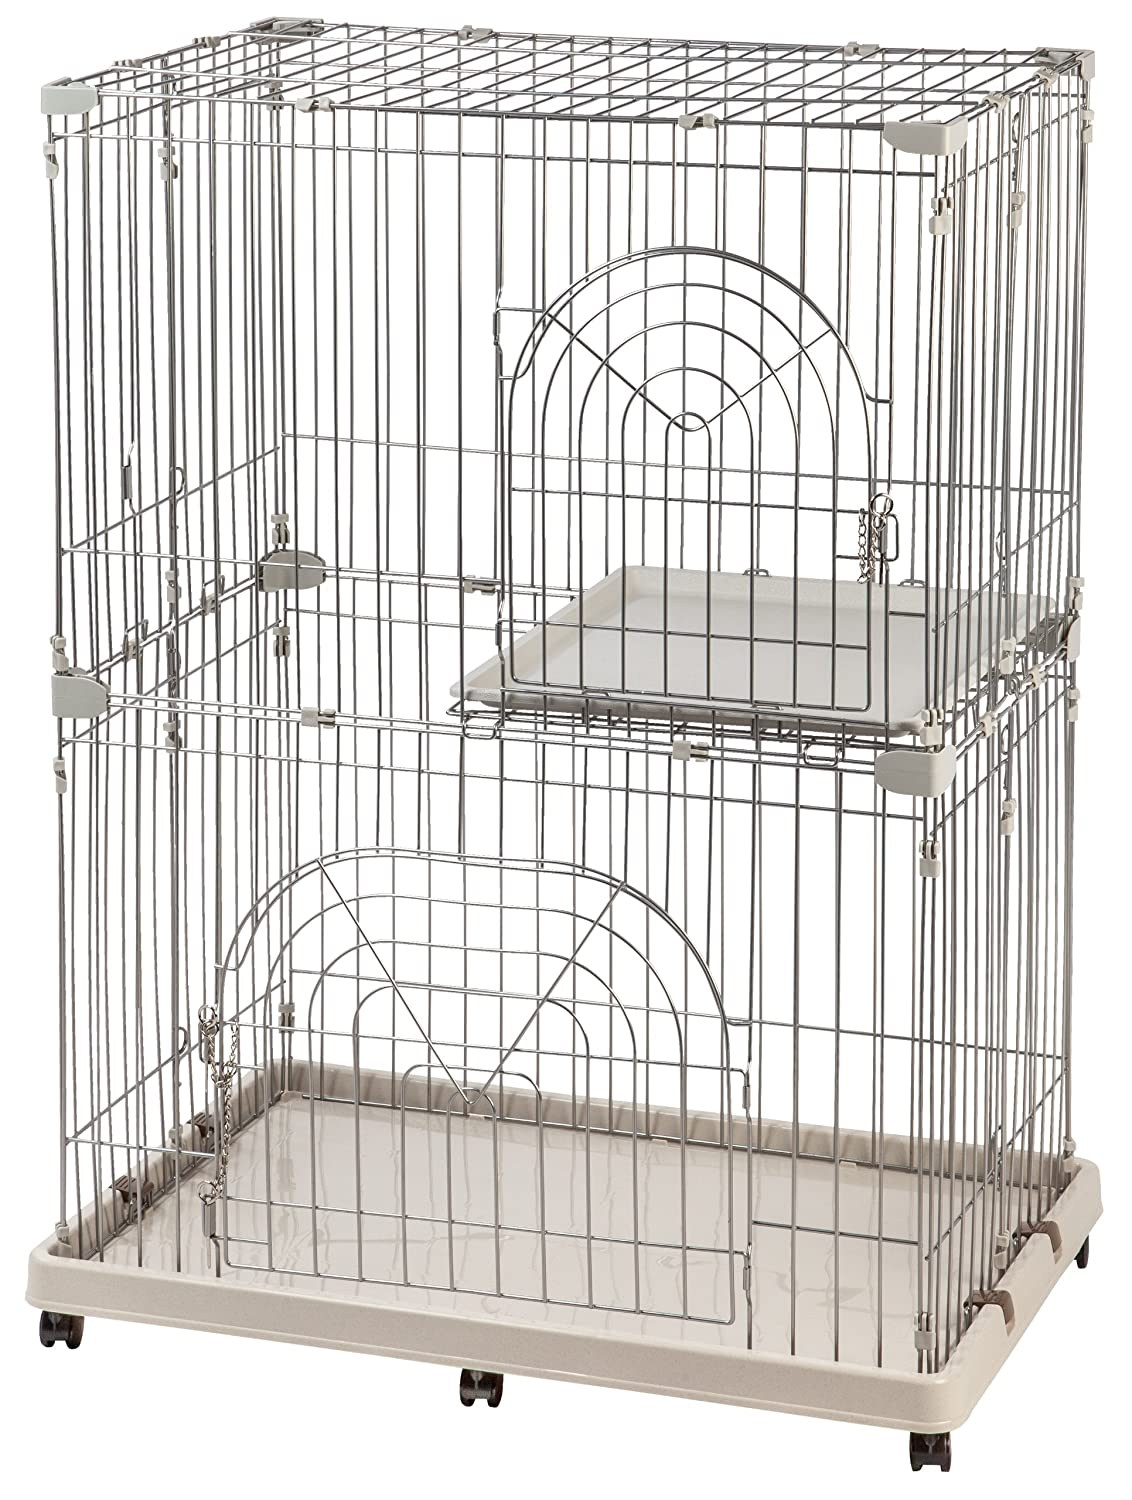 IRIS 2-Tier Wire Pet Cage, Gray IRIS USA Inc. 301775